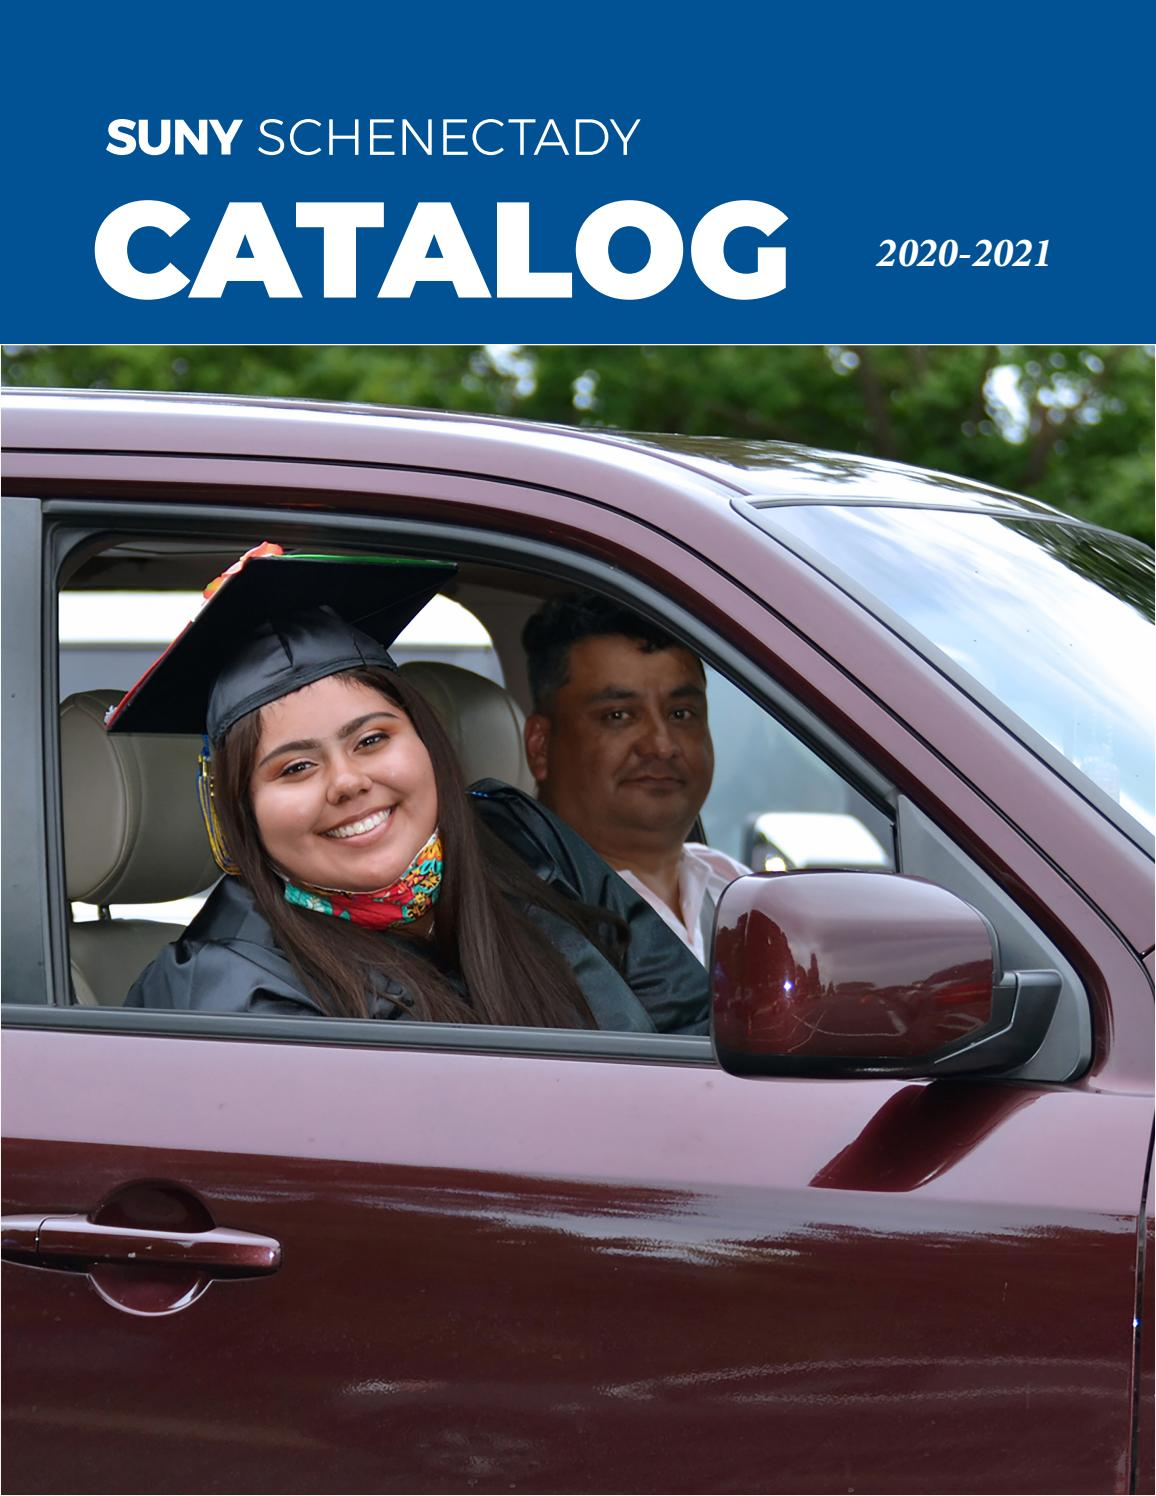 2020 2021 SUNY Schenectady Catalog by SUNY Schenectady County